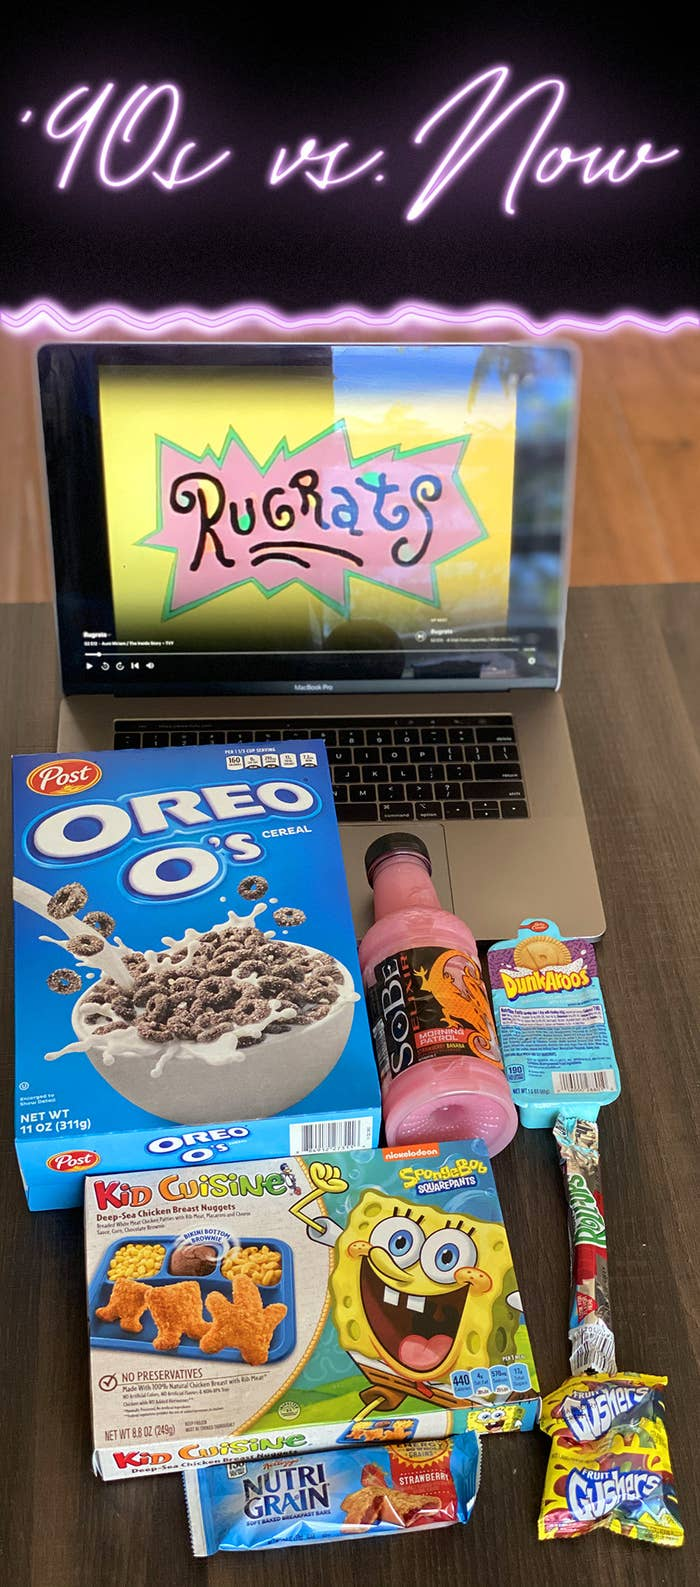 A laptop displaying Rugrats, a box of Oreo O's cereal, a bottle of Strawberry banana SoBe, DunkAroos cookies, a Kid Cuisine frozen meal, a Fruit Roll-Up, a Nutri-Grain bar, and Fruit Gushers